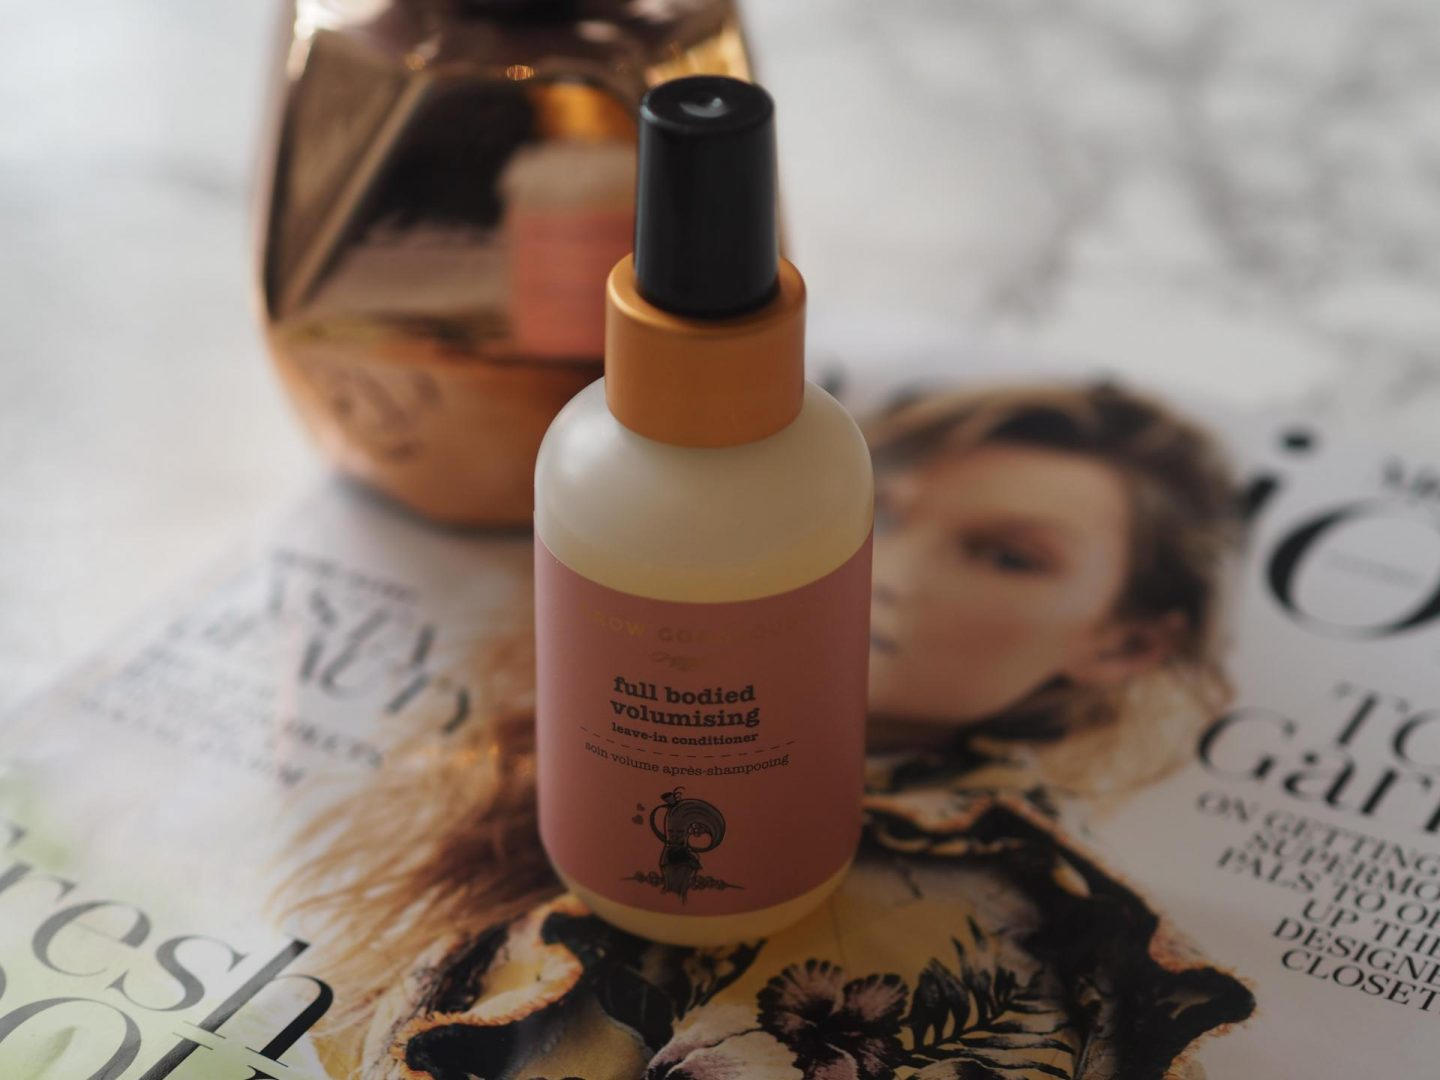 October Lookfantastic Beauty Haul - Product: Grow Gorgeous Full Bodied Volumising Leave-In Conditioner